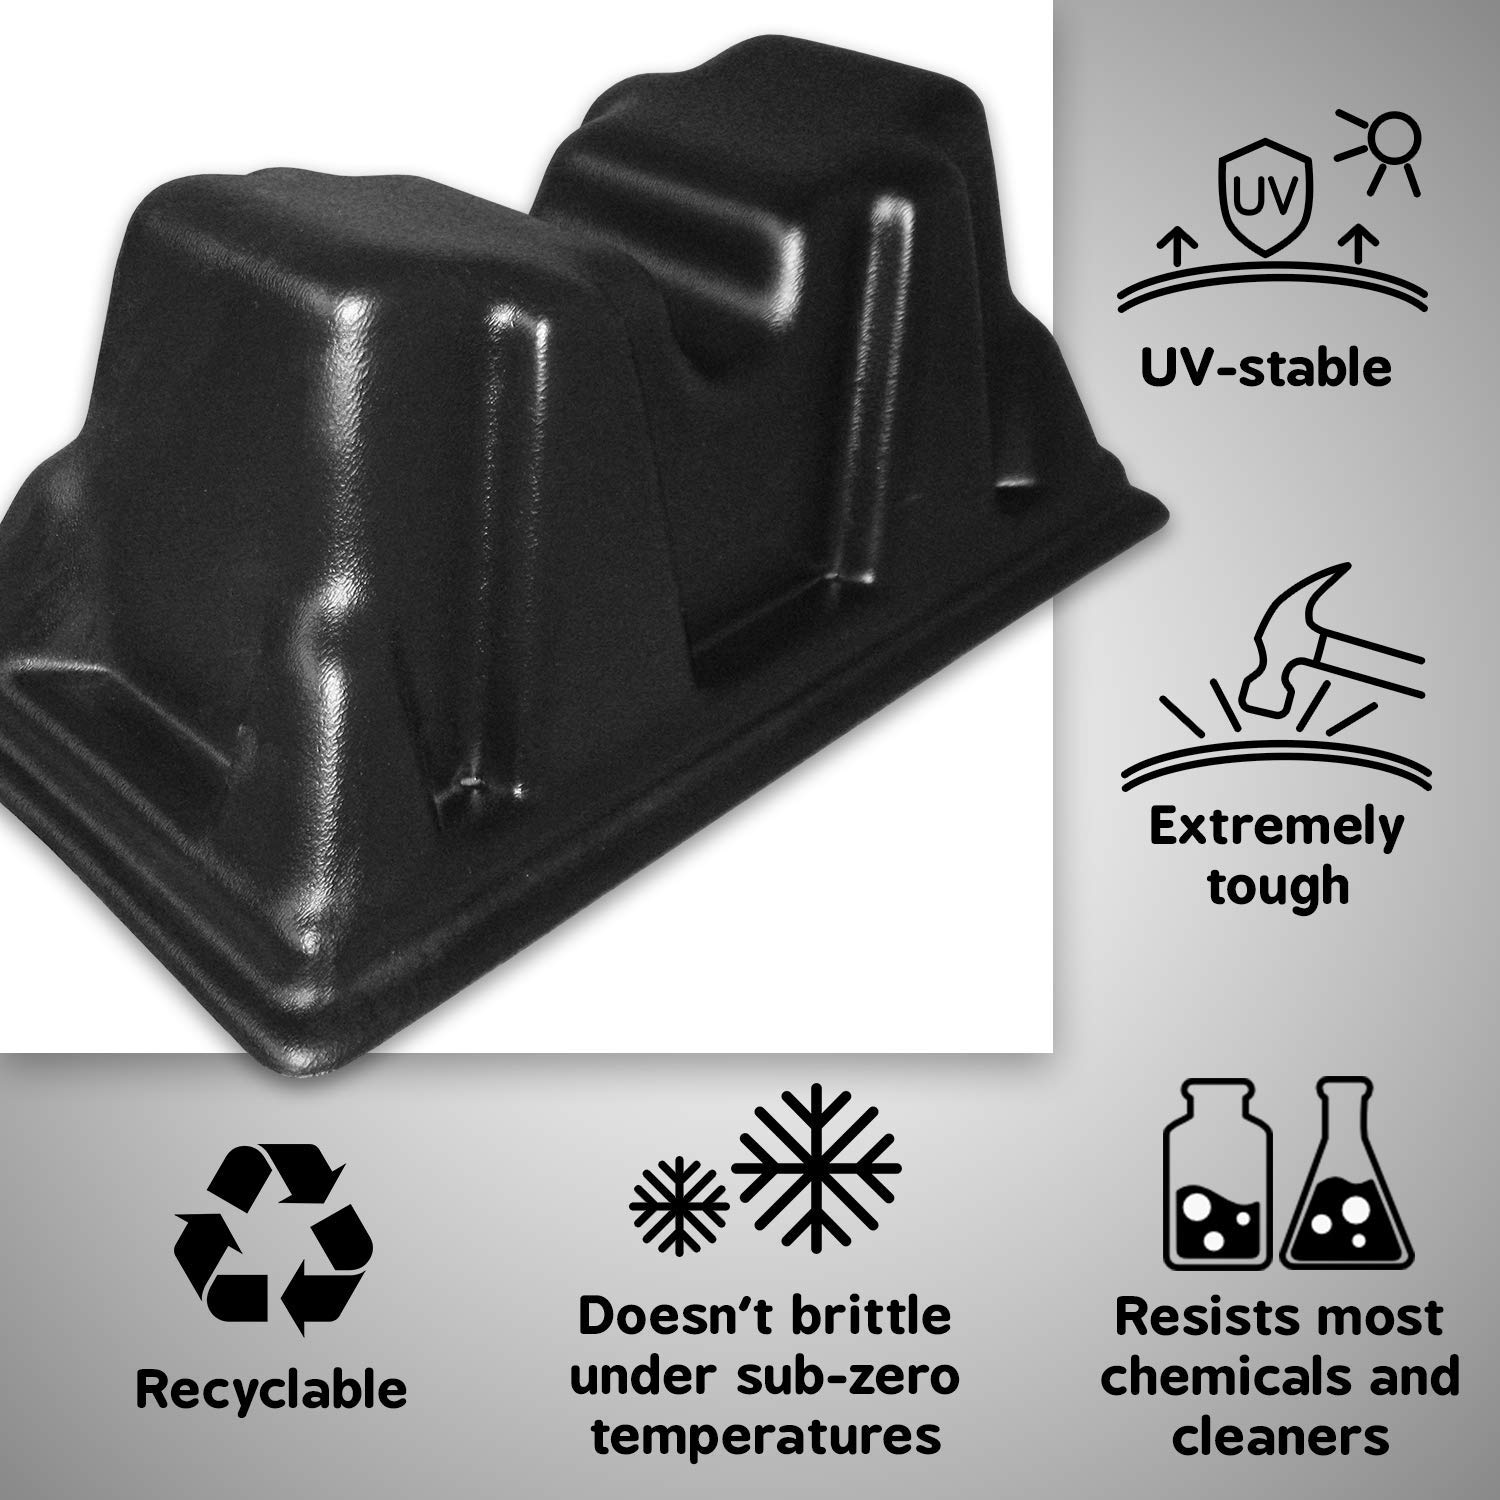 Pontoon Storage Blocks Perfect for Winter Storage UV Resistant and Extremely Durable Polyethylene Securely Stack on Cinder Blocks Made in USA Unique Design